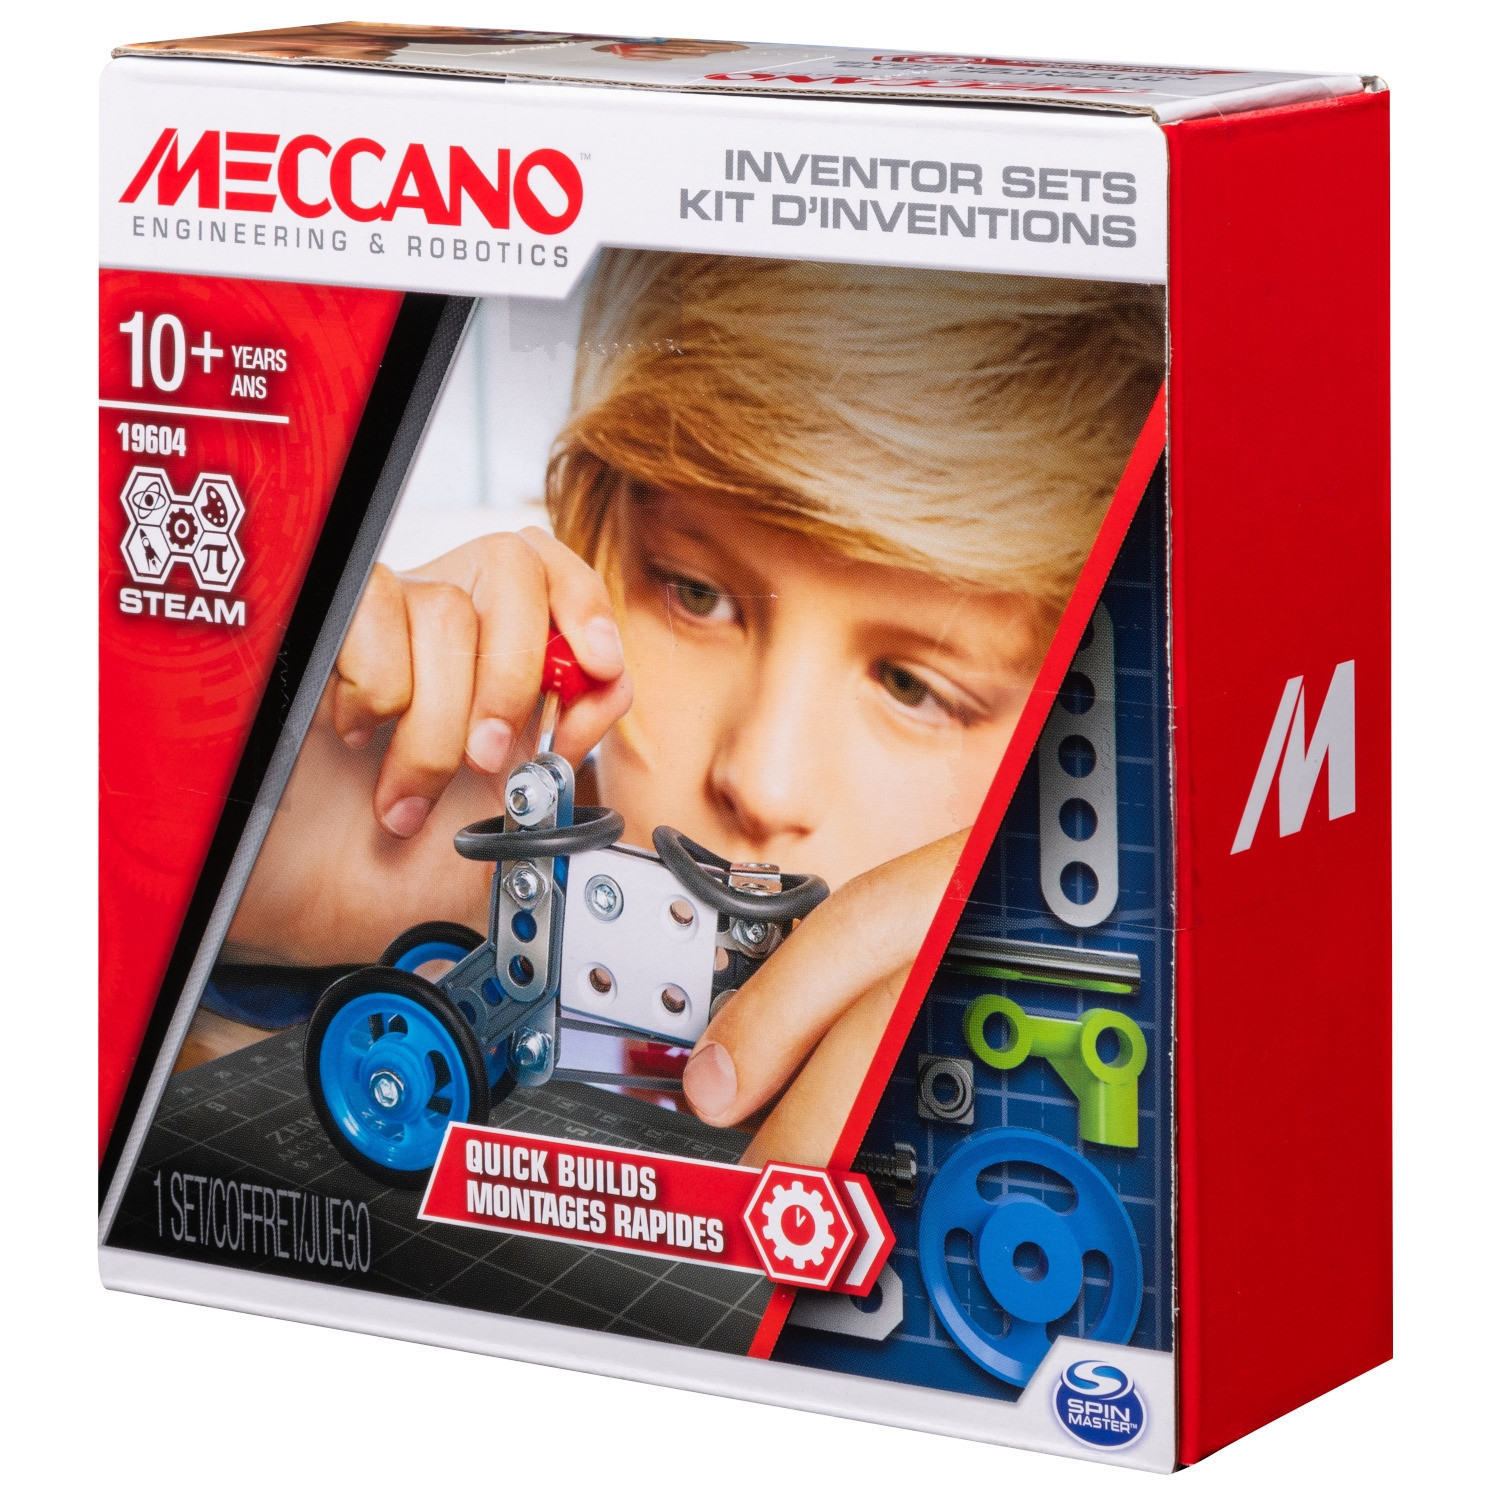 Meccano KIT D'INVENTIONS – MONTAGES RAPIDES Kits d'Inventions